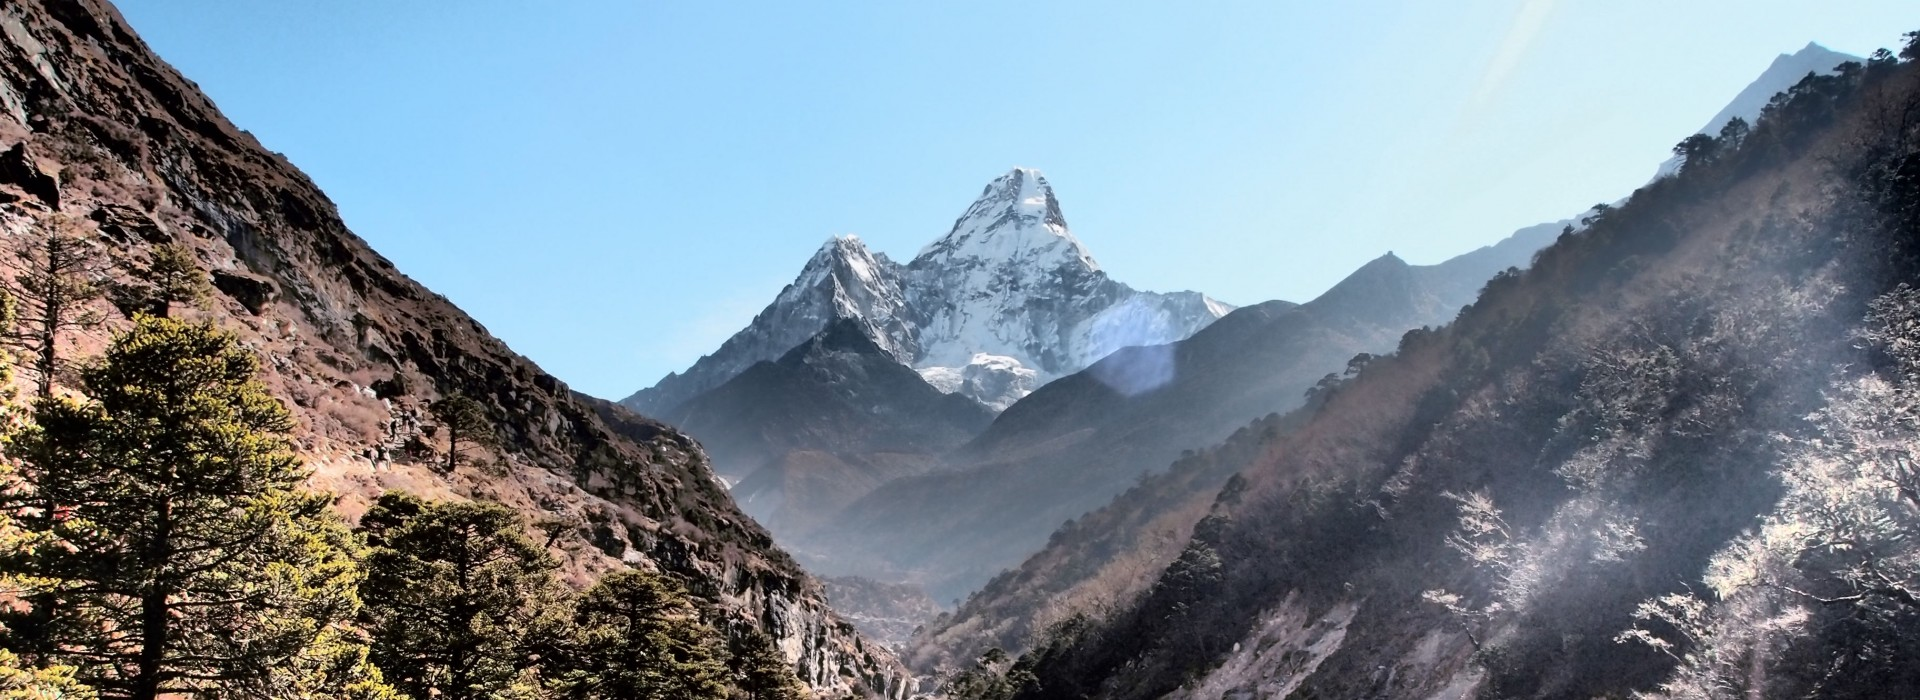 Everest Panorama Trek in Nepal